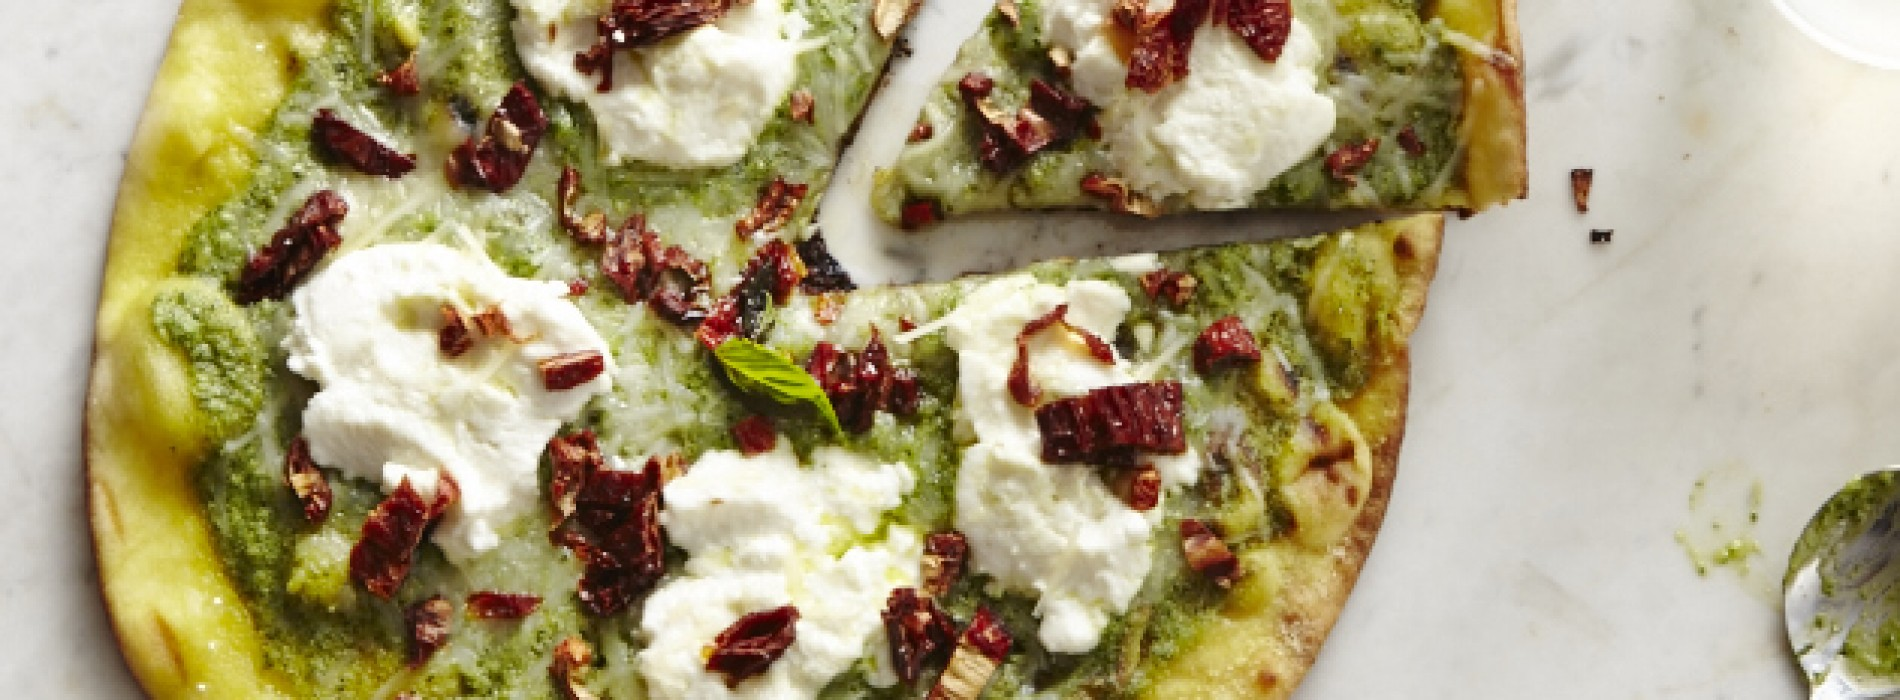 Spinach Calzones With Ricotta And Sun-Dried Tomatoes Recipes ...